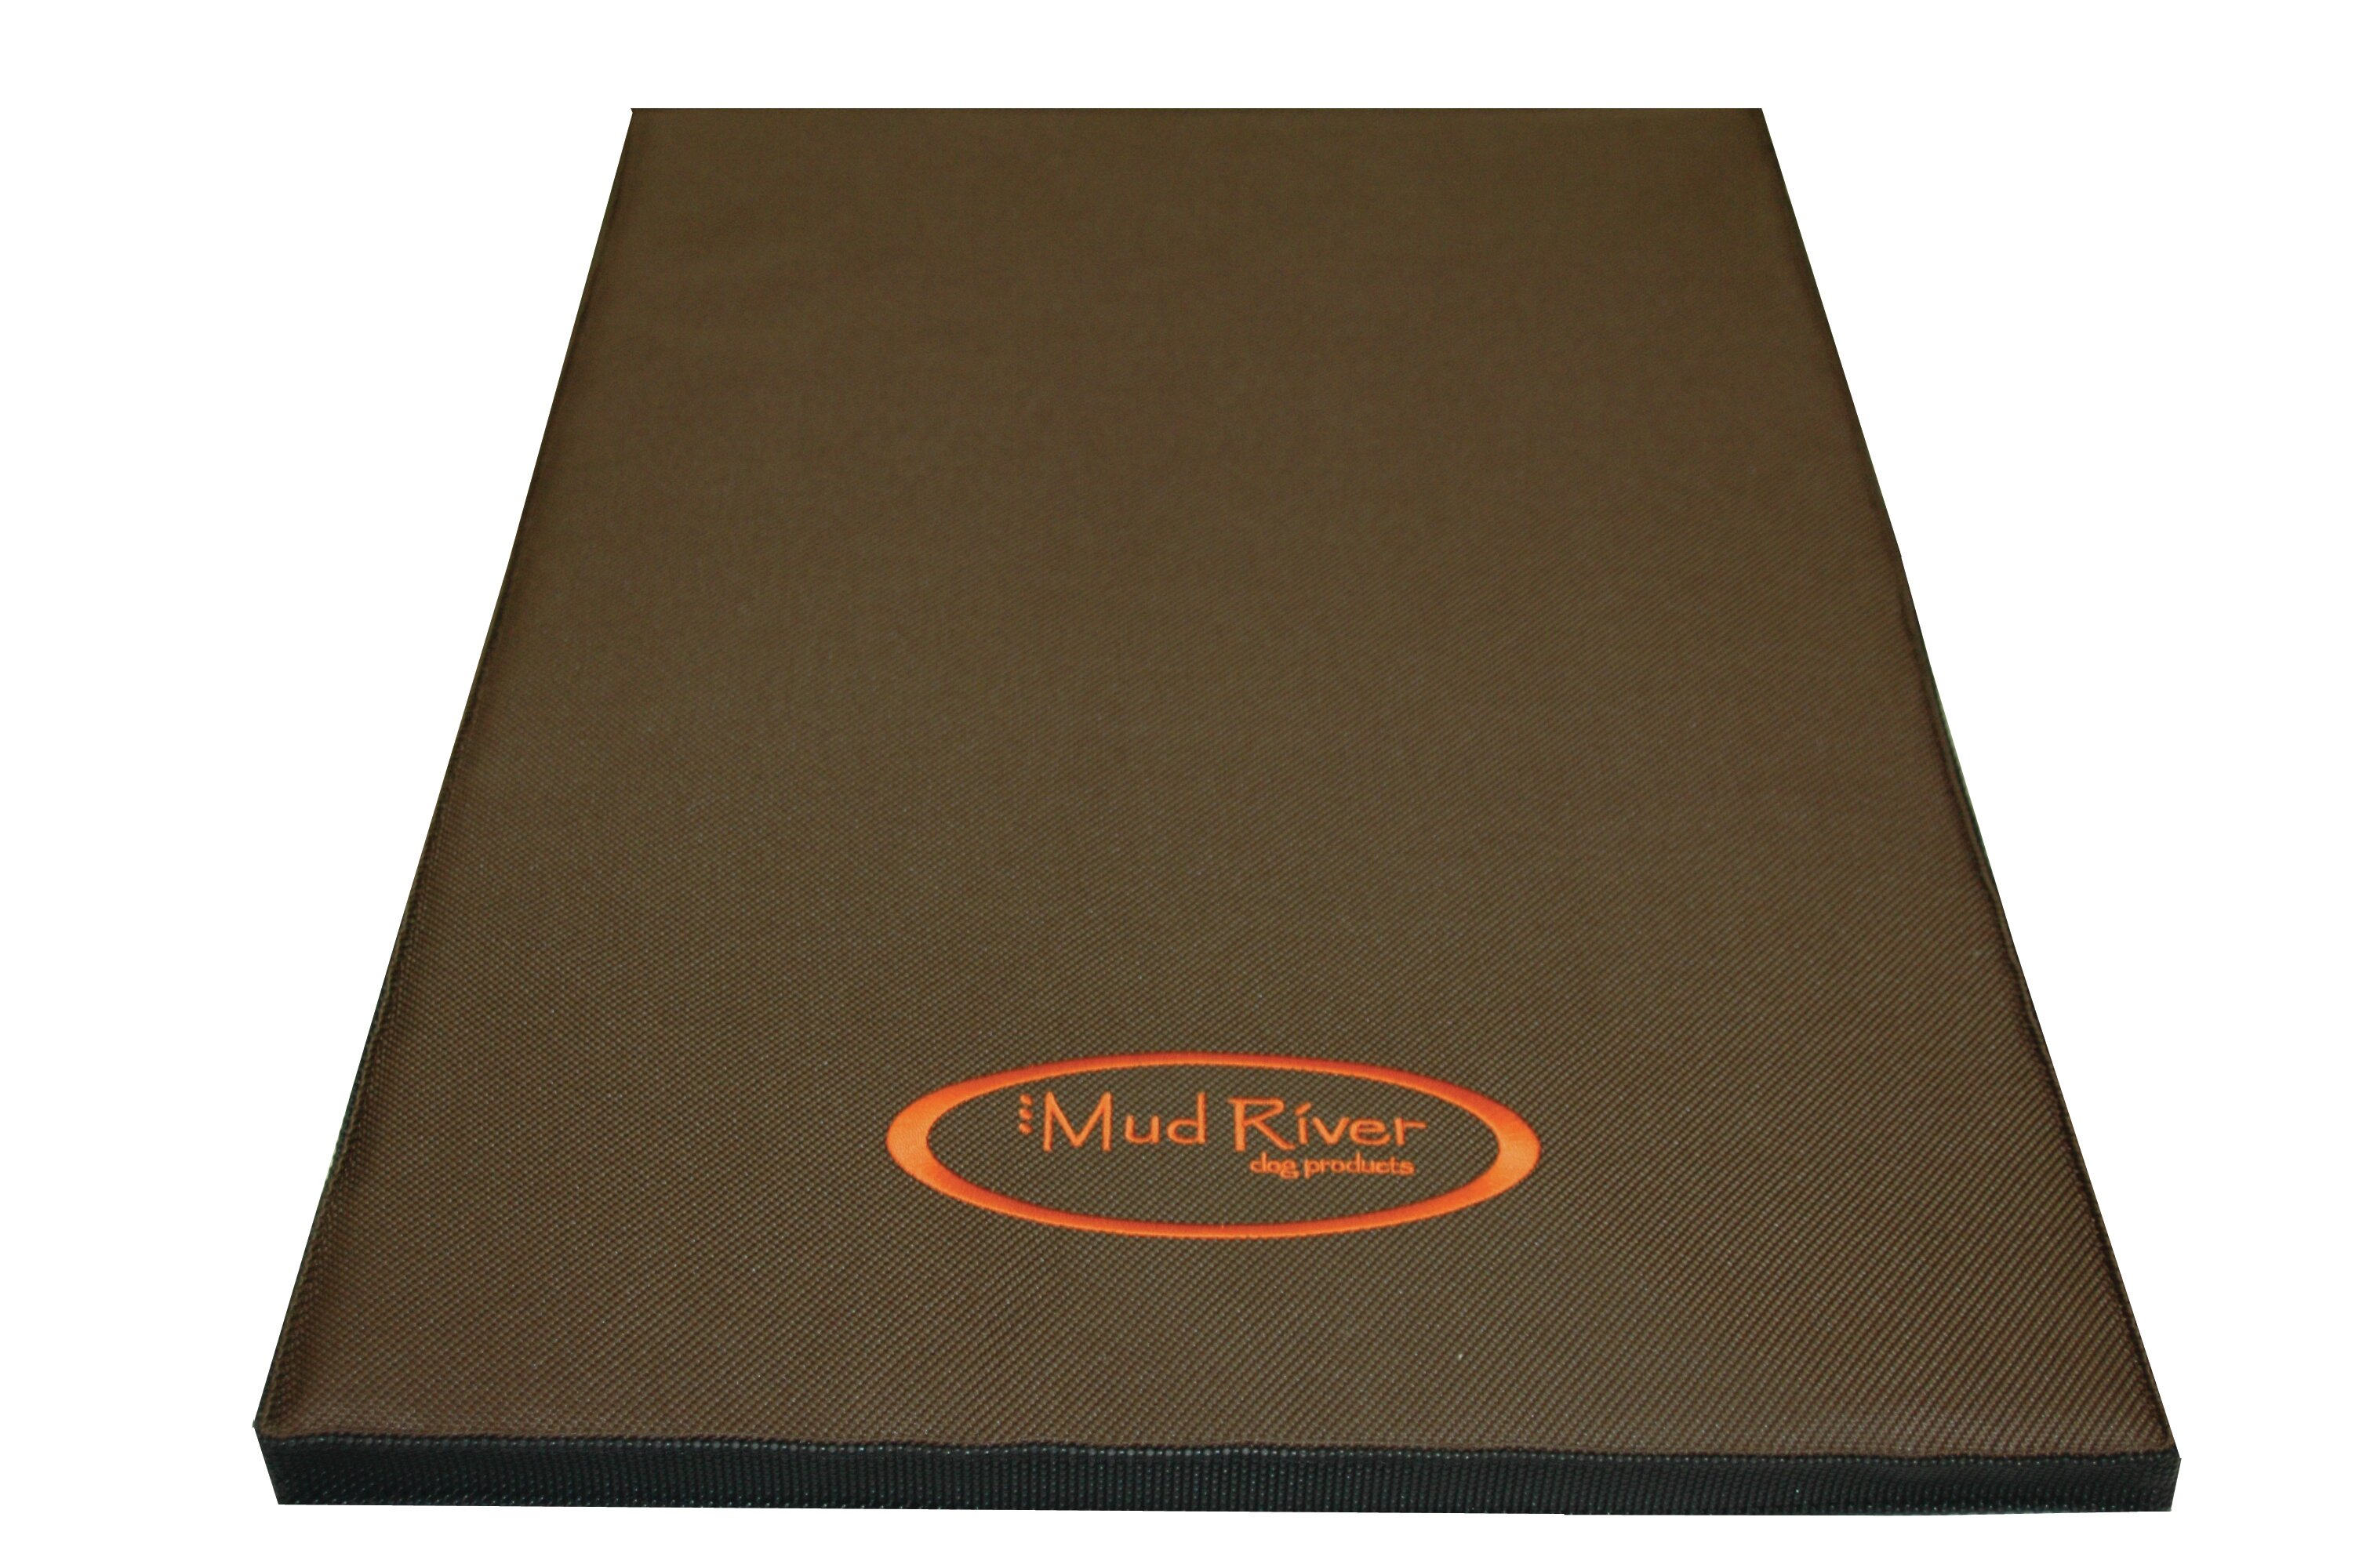 floor urinal floors wholesale paw pet showroom mat accessories products alibaba clean dog suppliers